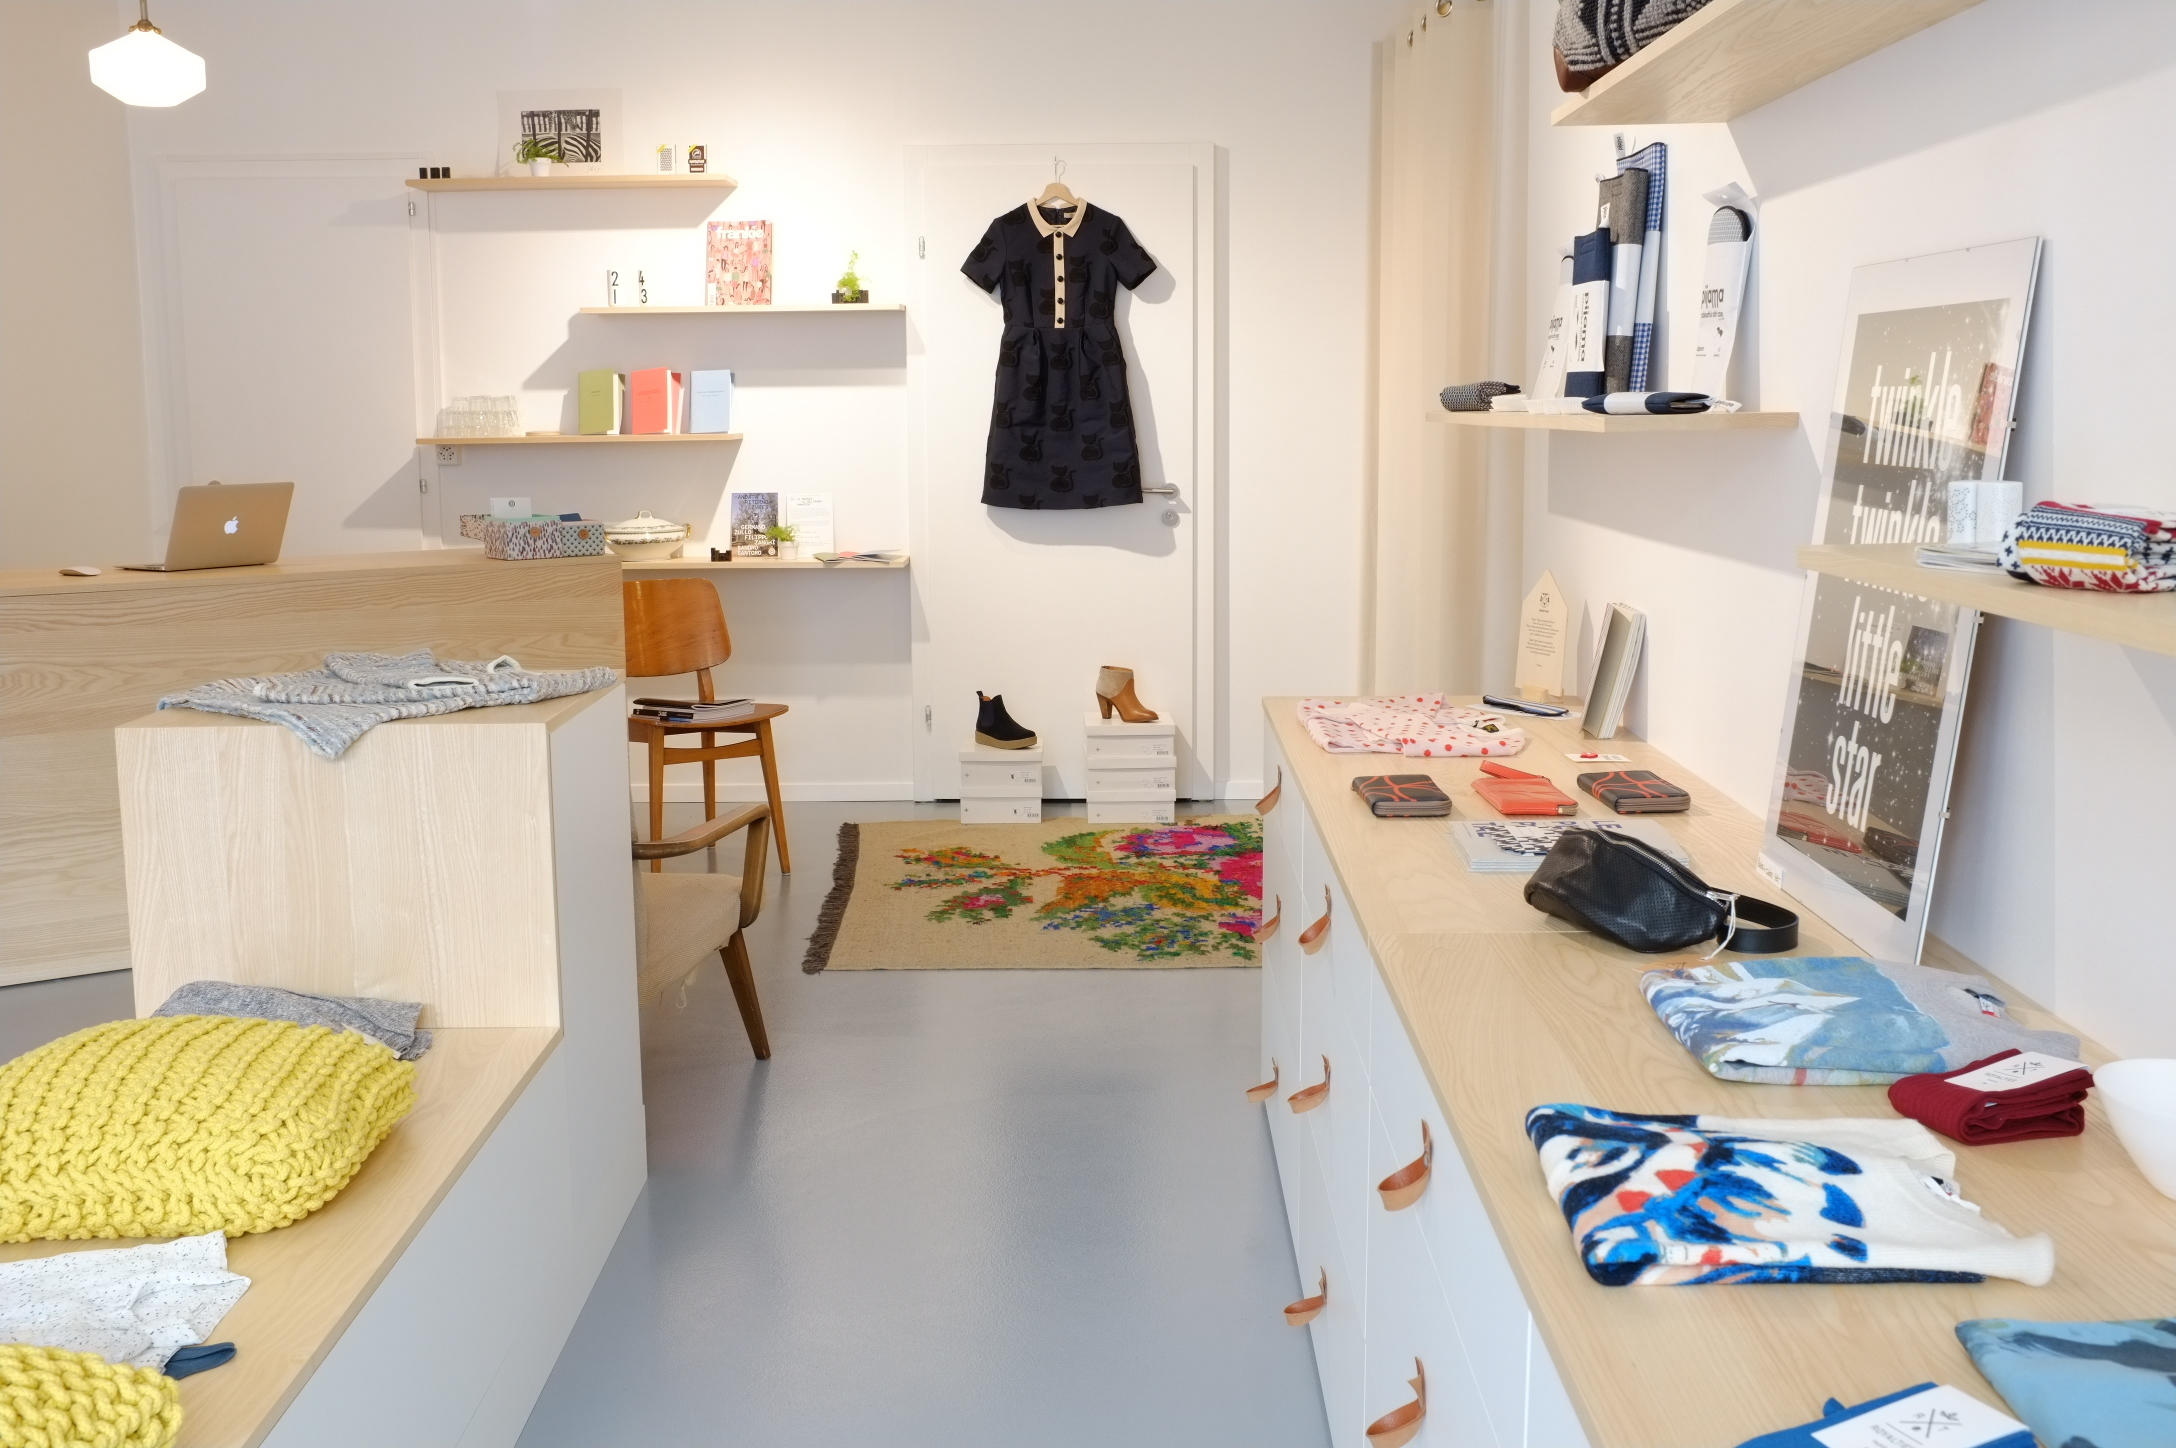 The Liberty Shop is a womenswear fashion boutique in Lausanne